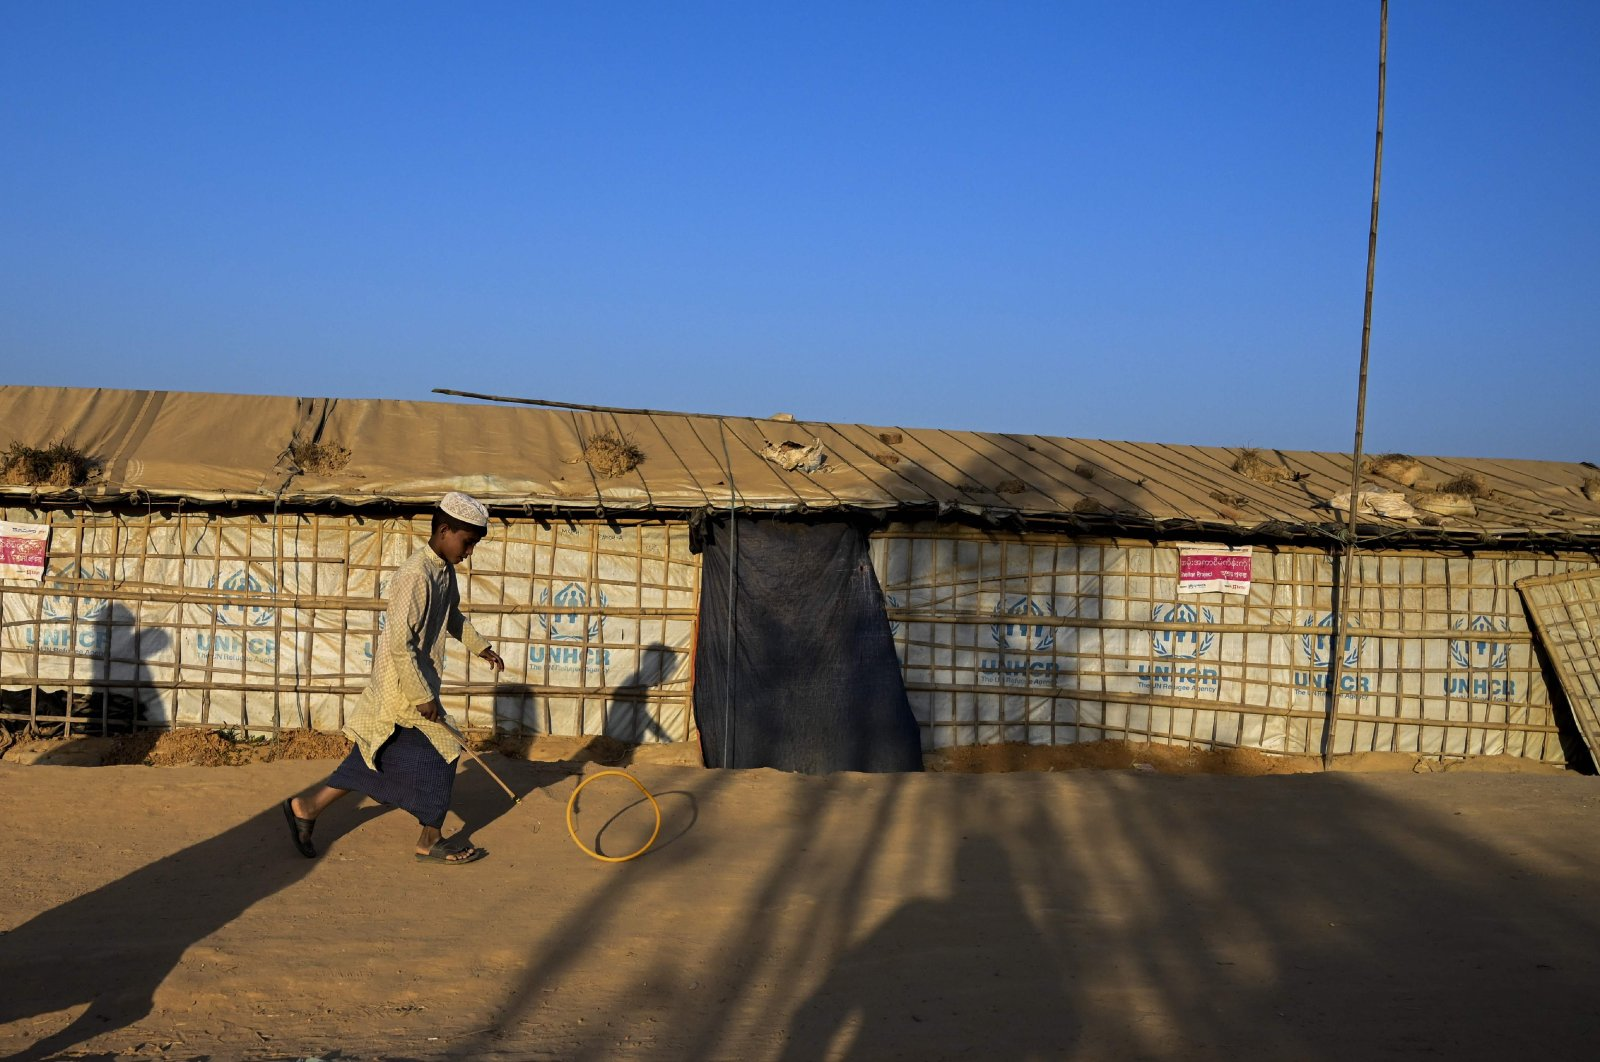 A young Rohingya refugee plays at Balukhali refugee camp in Ukhia, Bangladesh, Feb. 4, 2019. (AFP Photo)